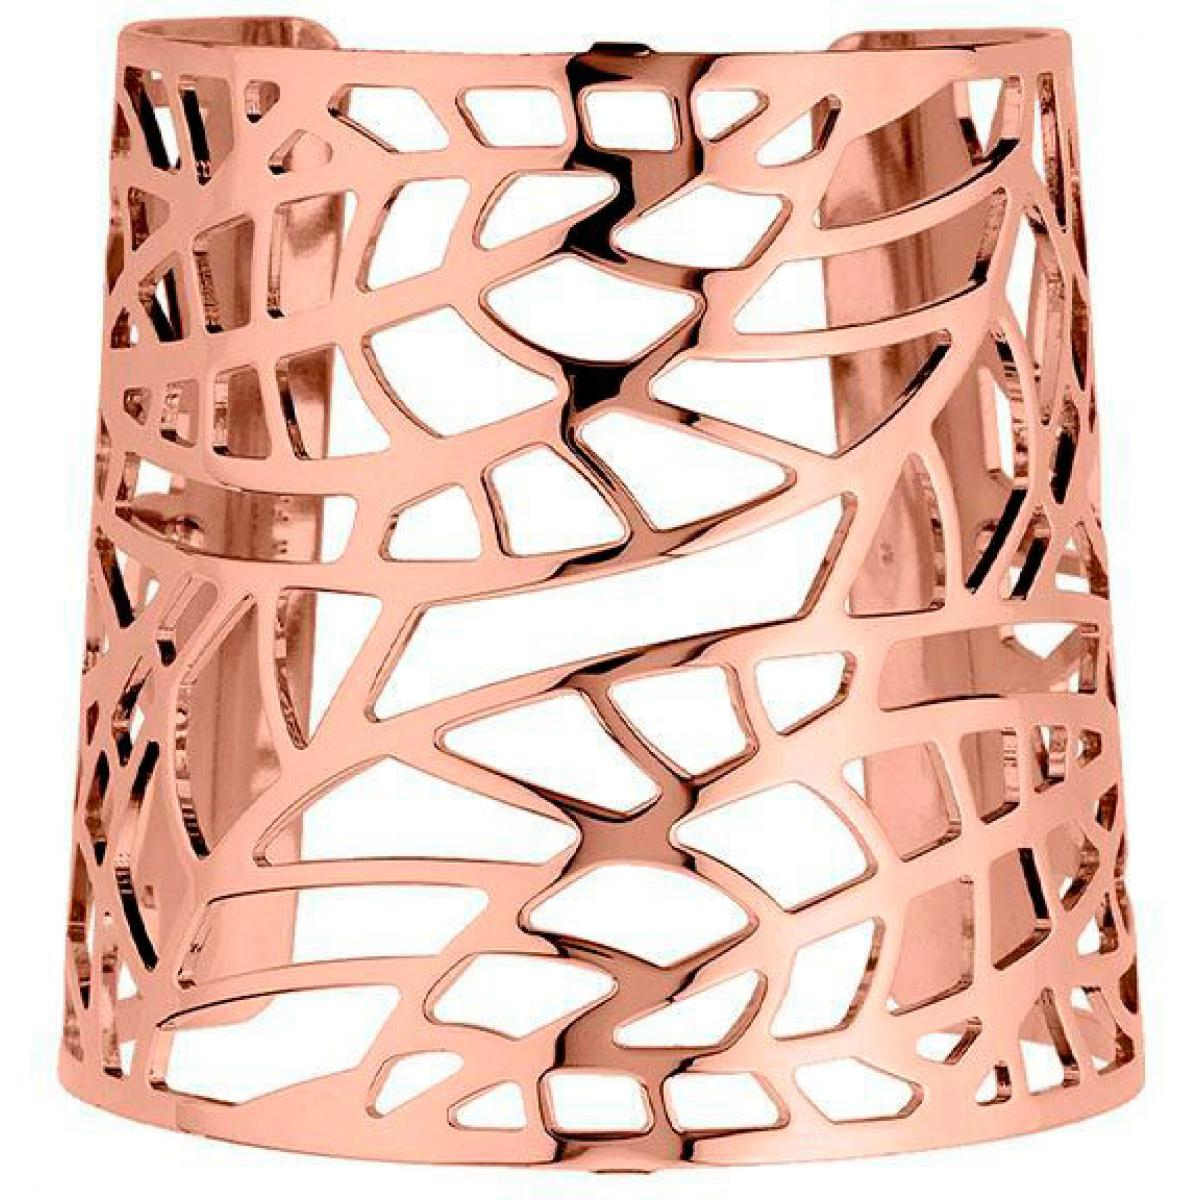 Les Georgettes Bracelet Fougères Laiton Finition Or Rose 60 mm 70304624000000